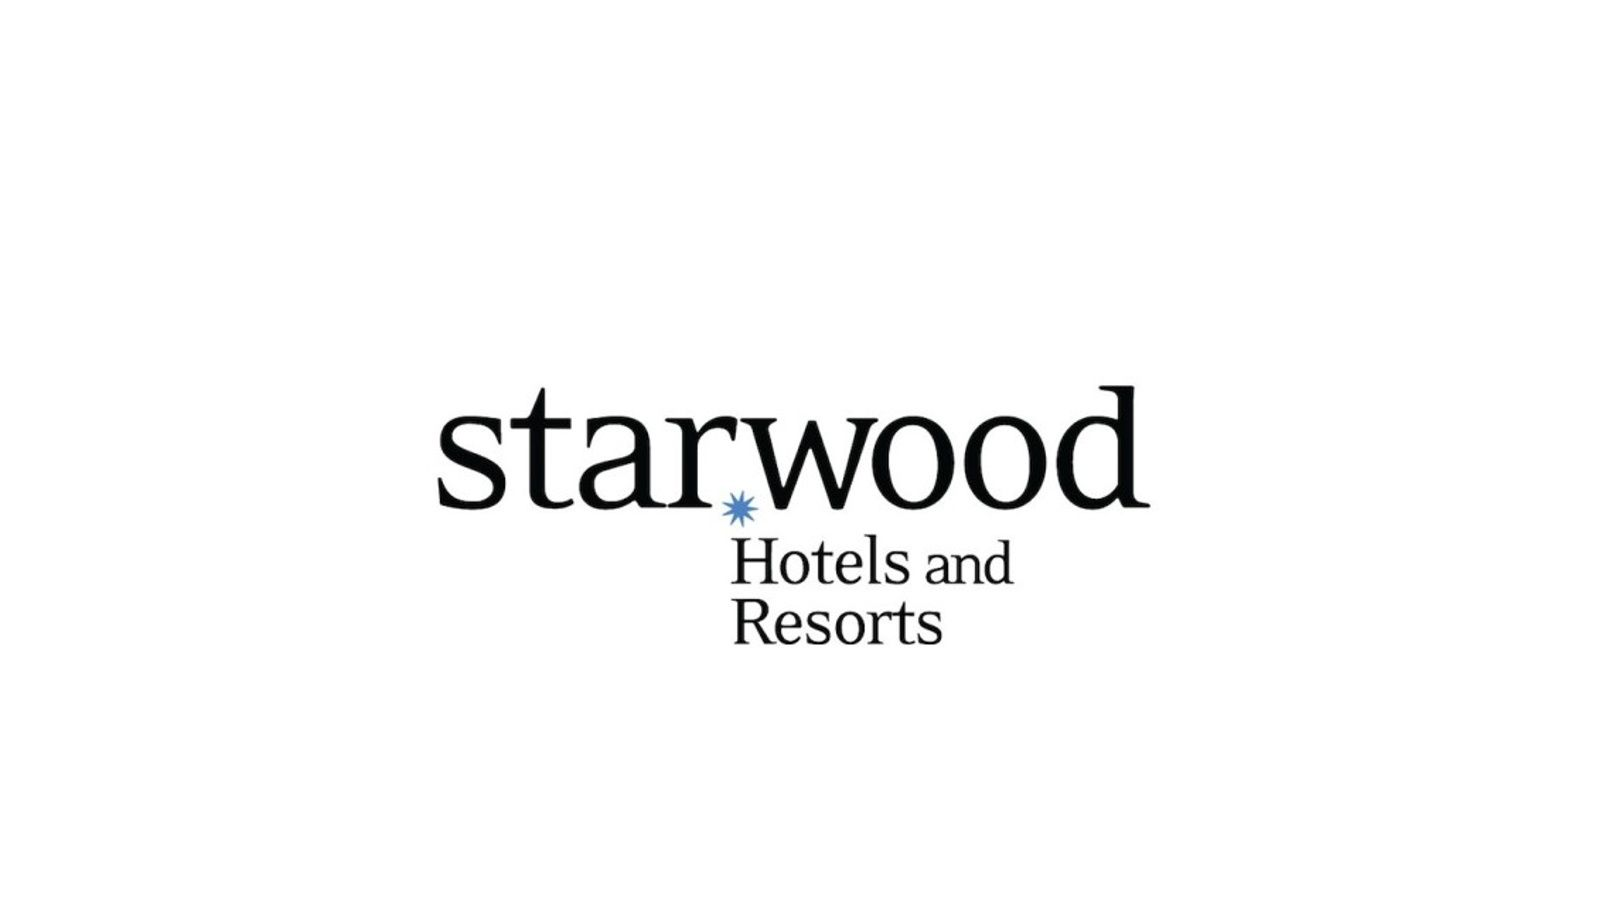 Starwood Hotels and Resorts Inc.